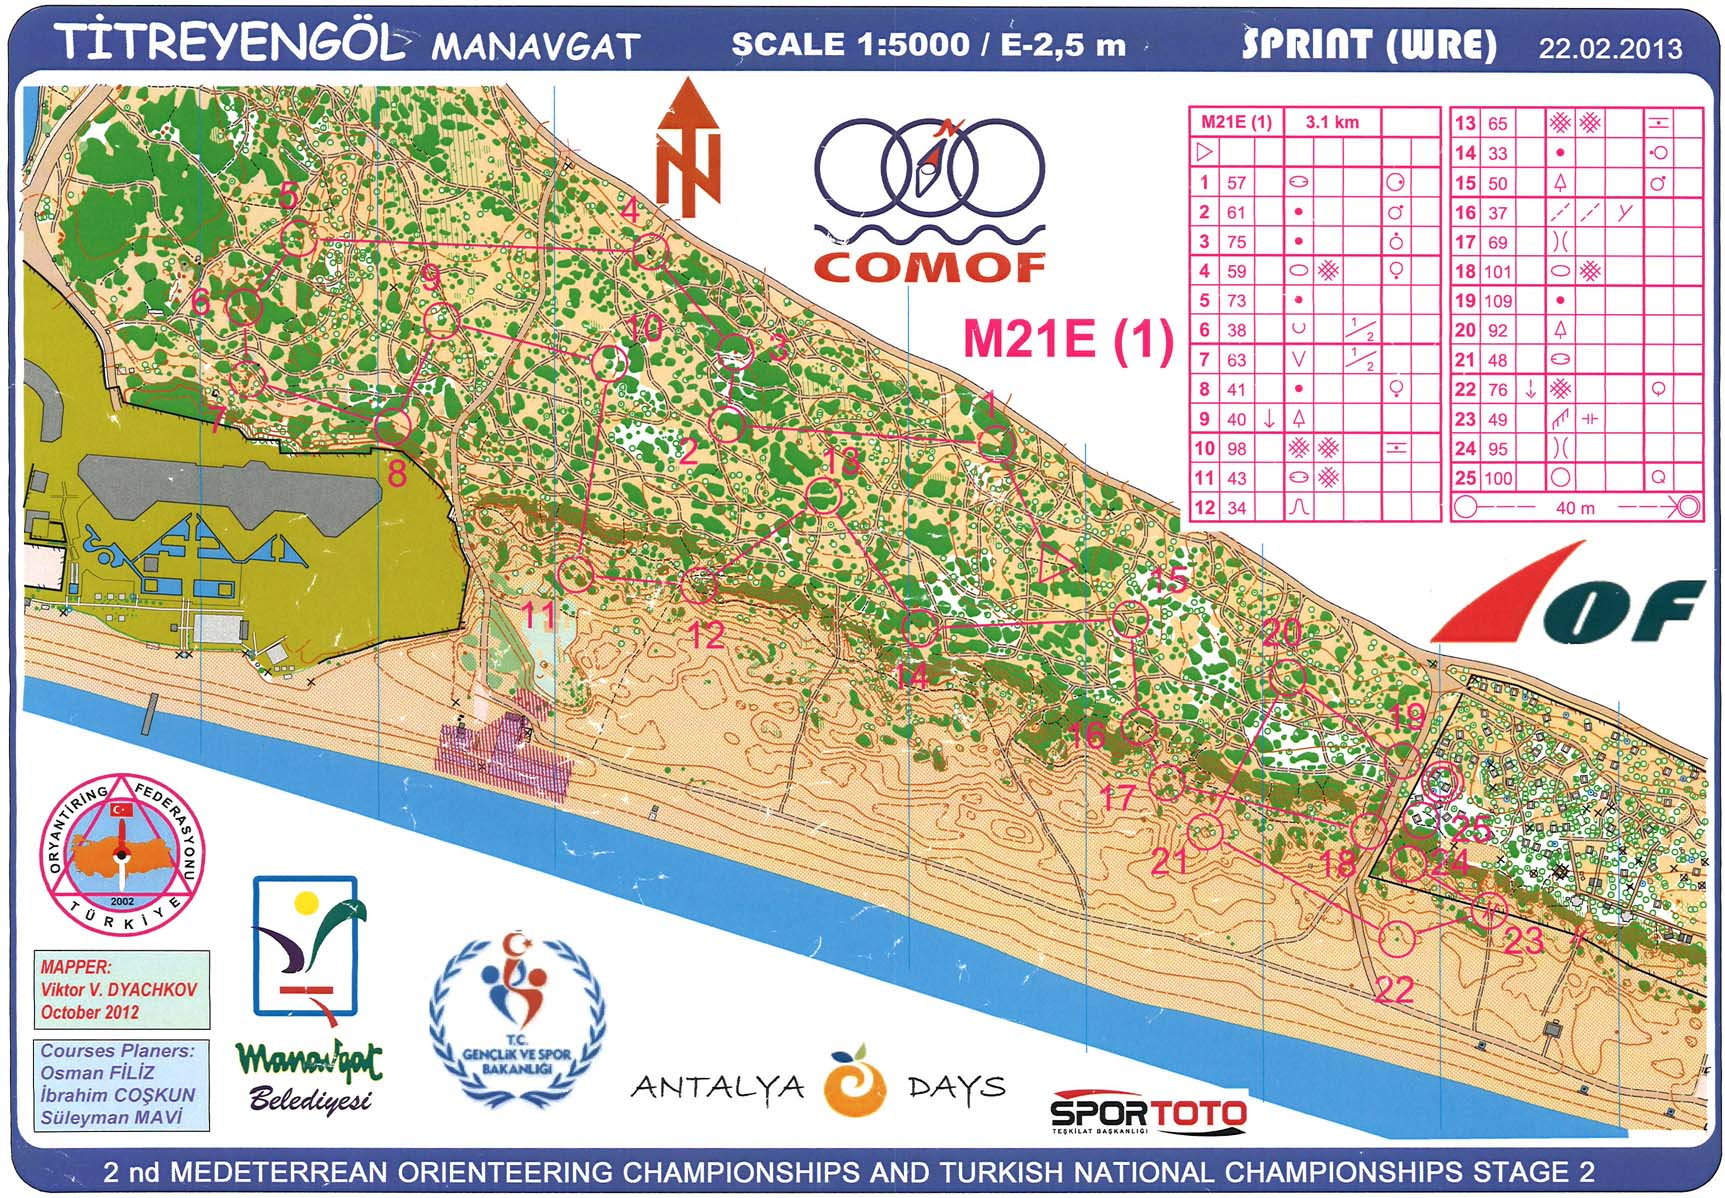 Antalya O-days 2 Sprint (22/02/2013)